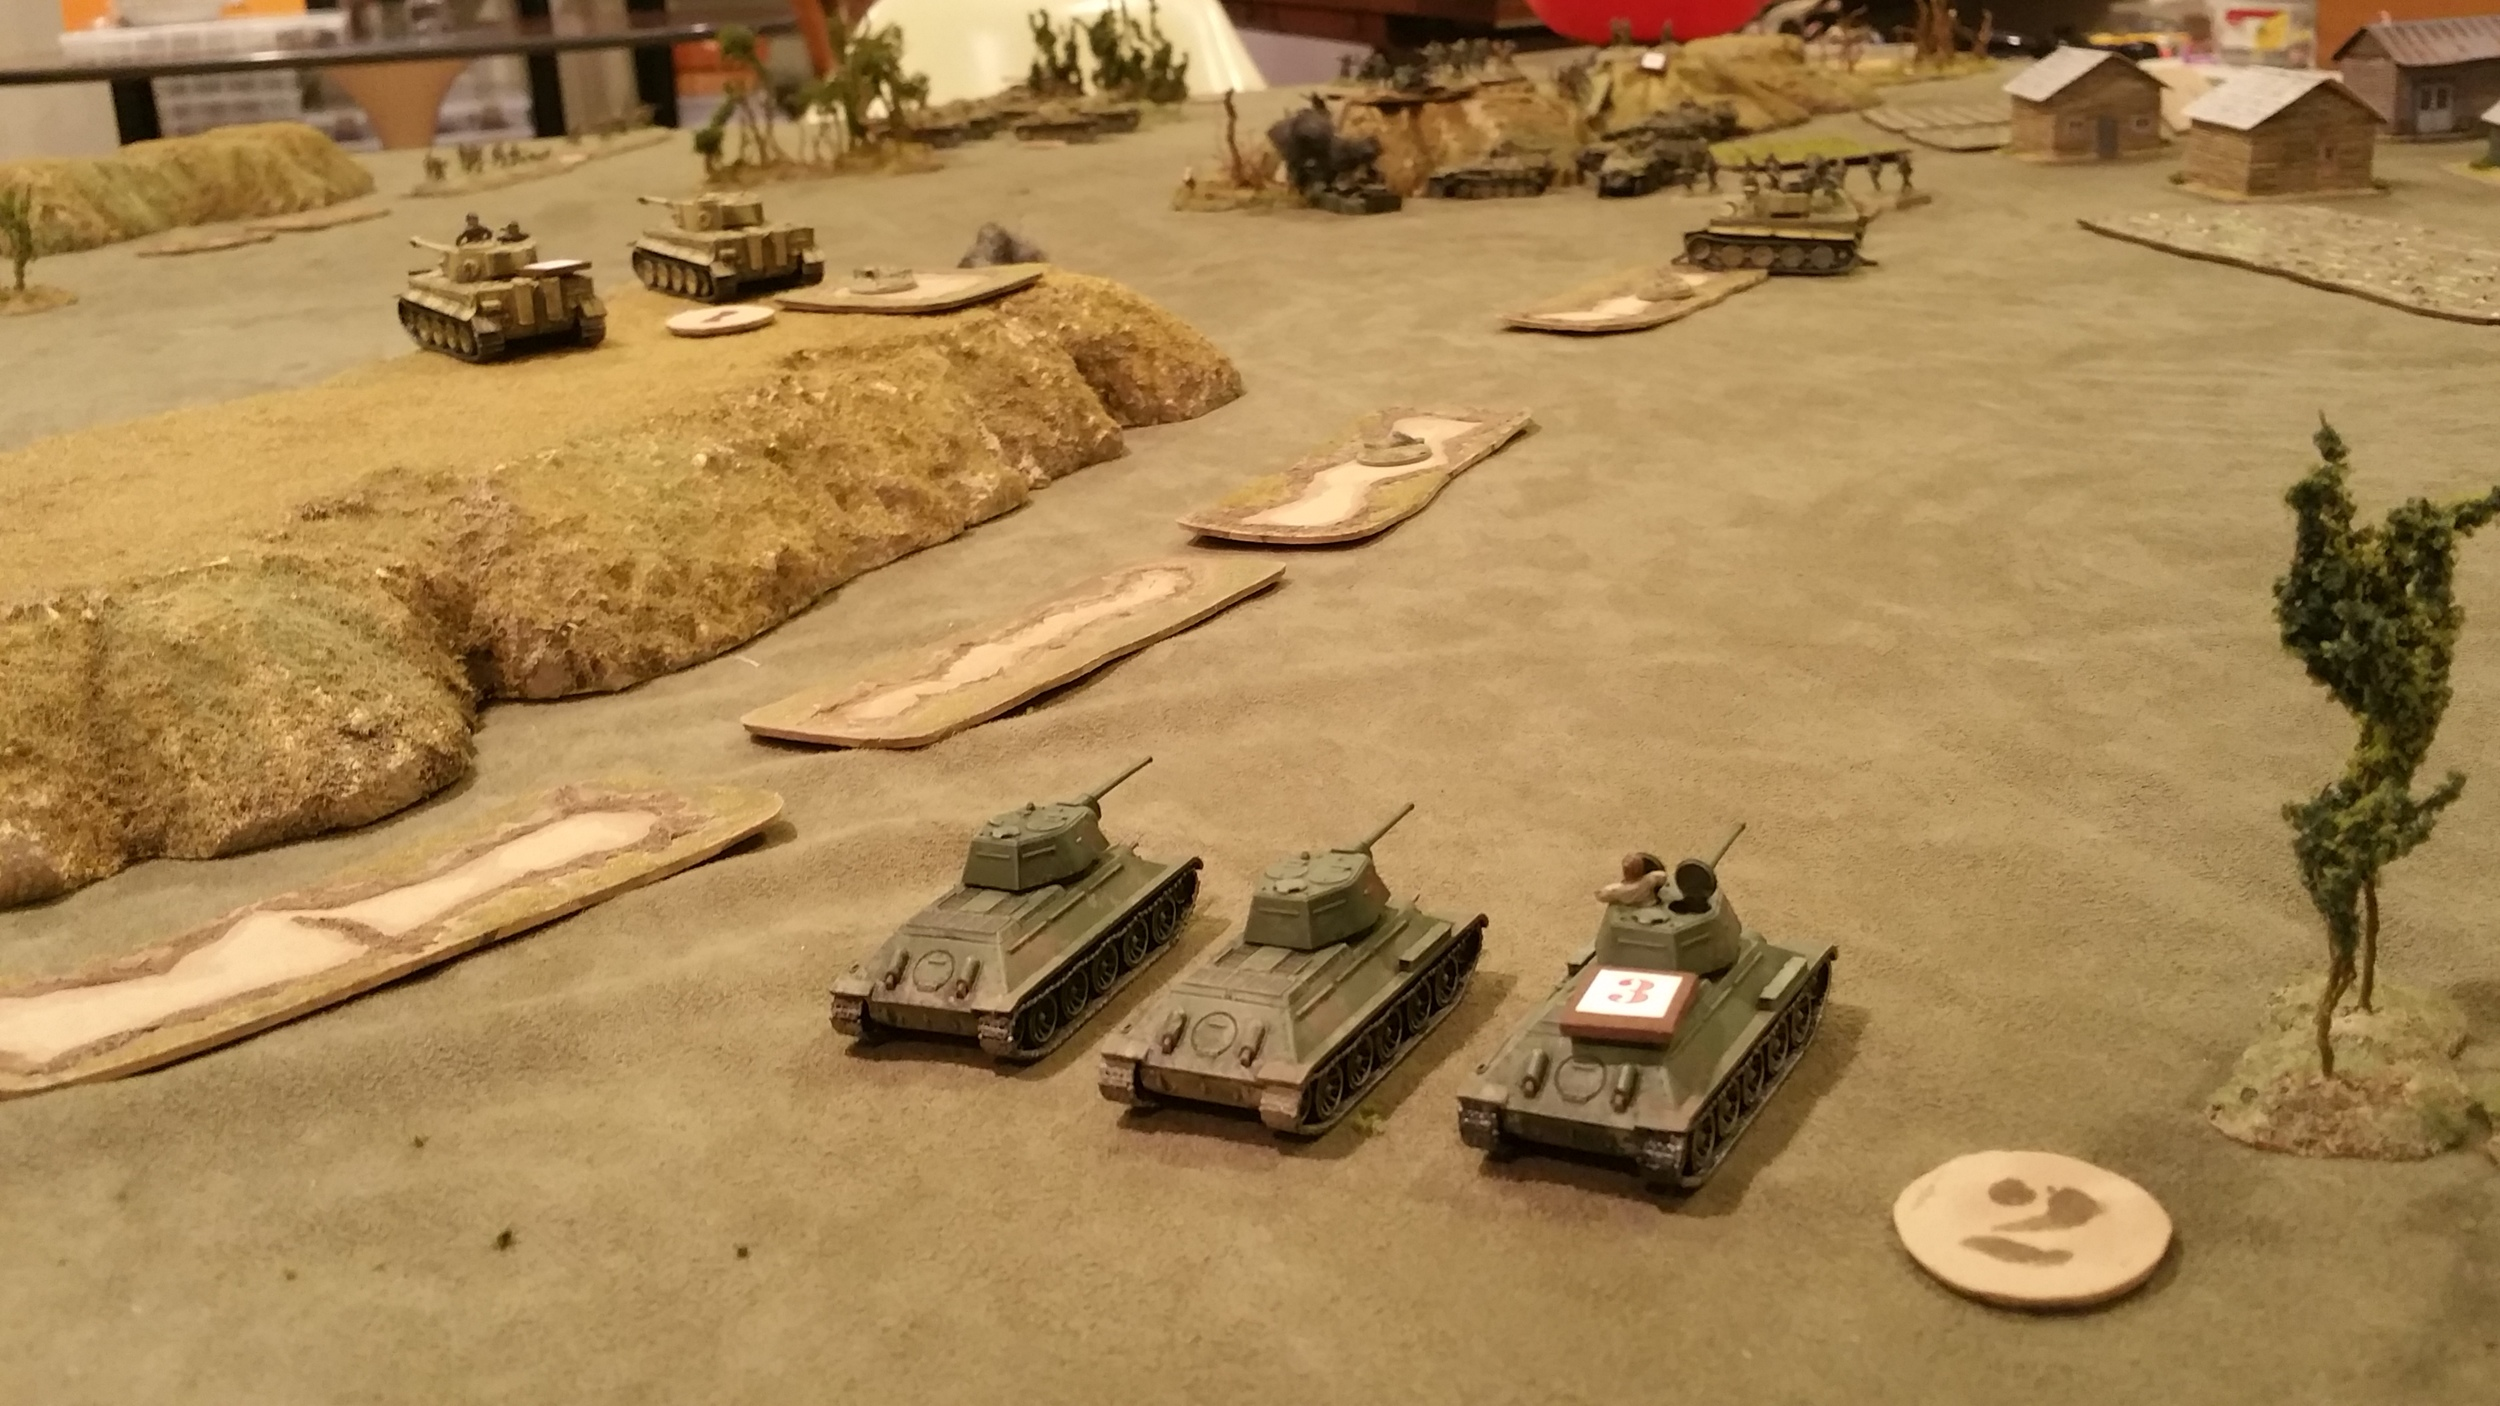 T-34 platoon 2 snipes at halftracks